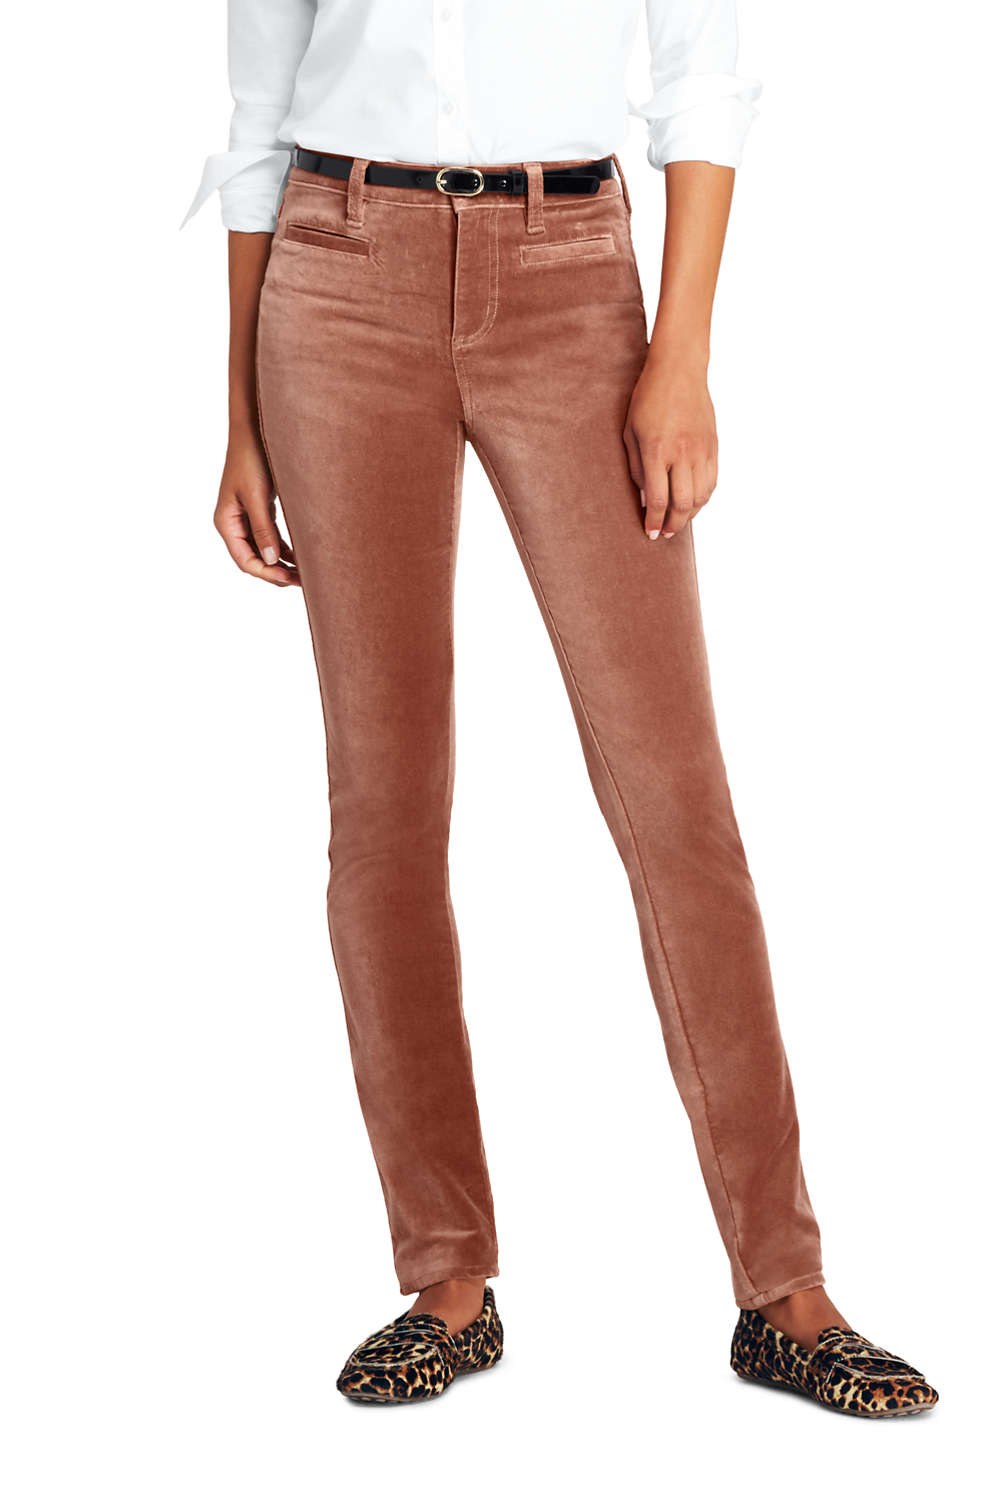 cbf6b654e6c Women's Mid Rise Velvet Slim Leg Pants from Lands' End